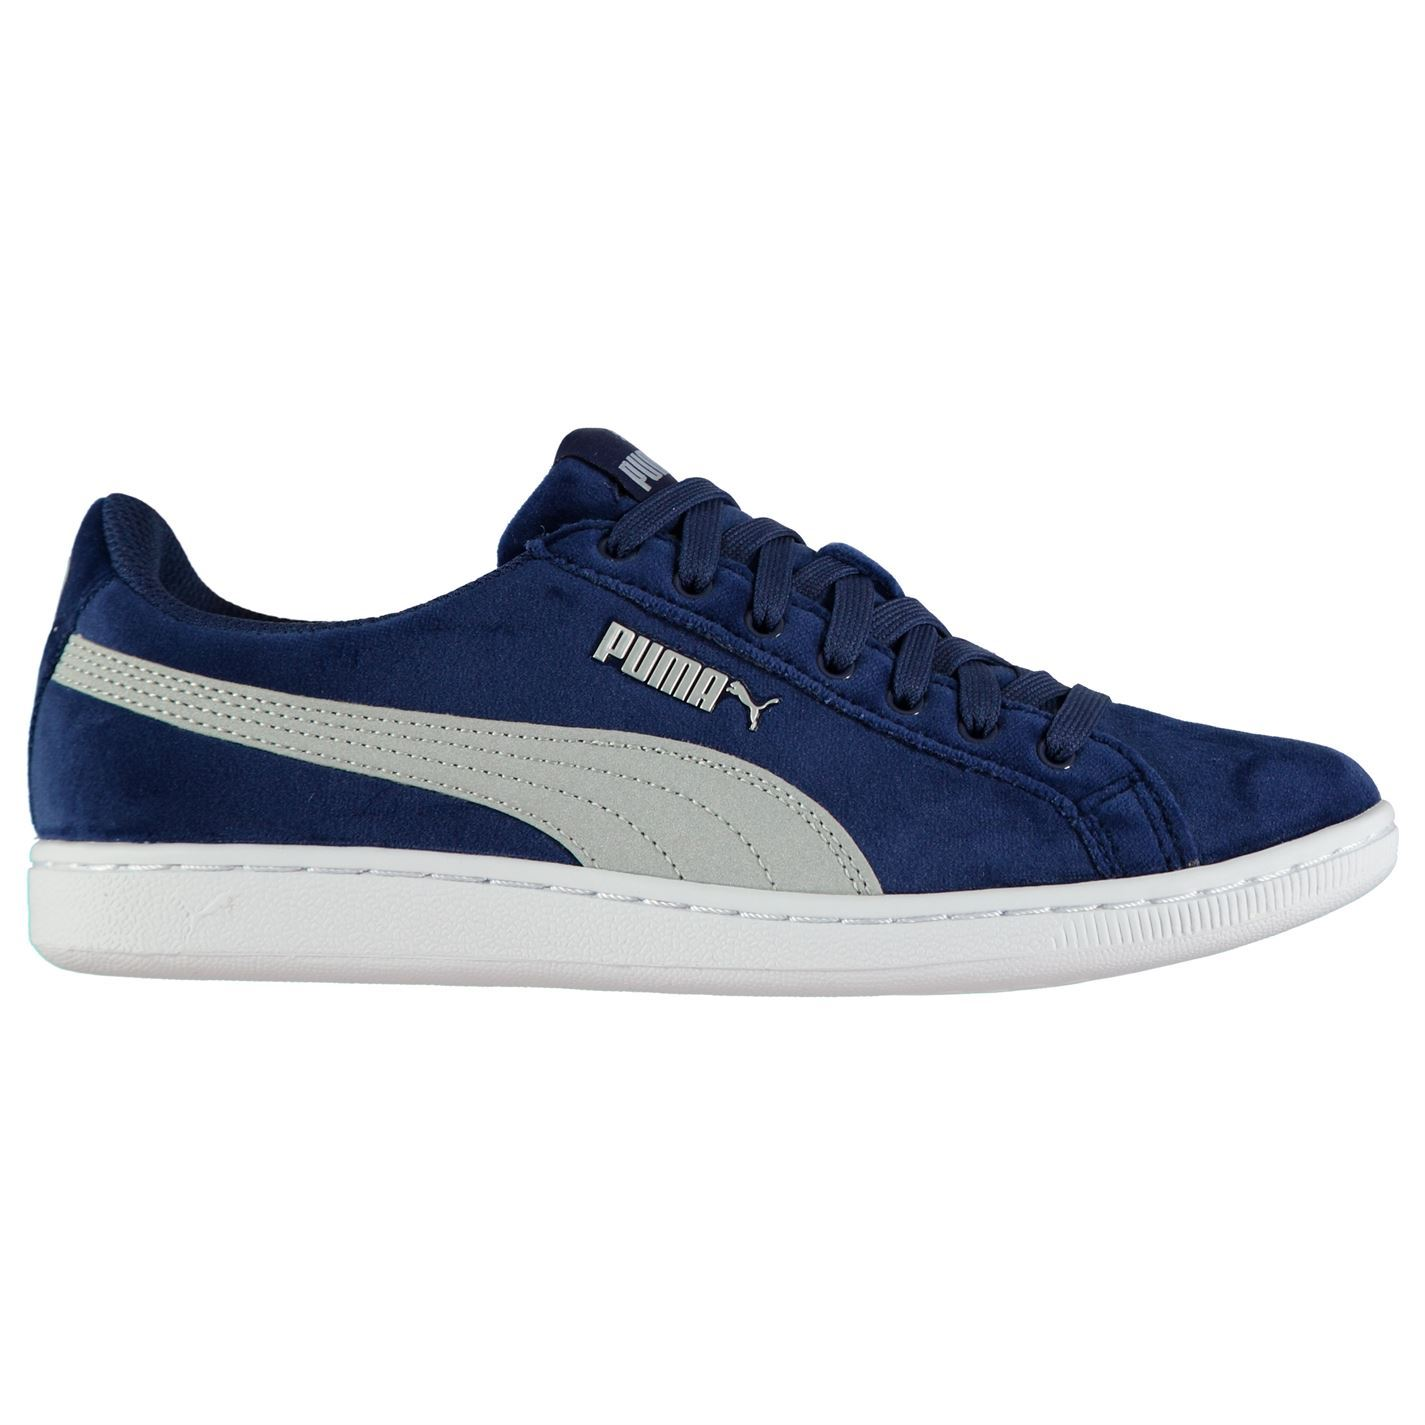 abdc6088902 Details about Puma Womens Vikky VR Trainers Suede Lace Up Padded Ankle  Collar Casual